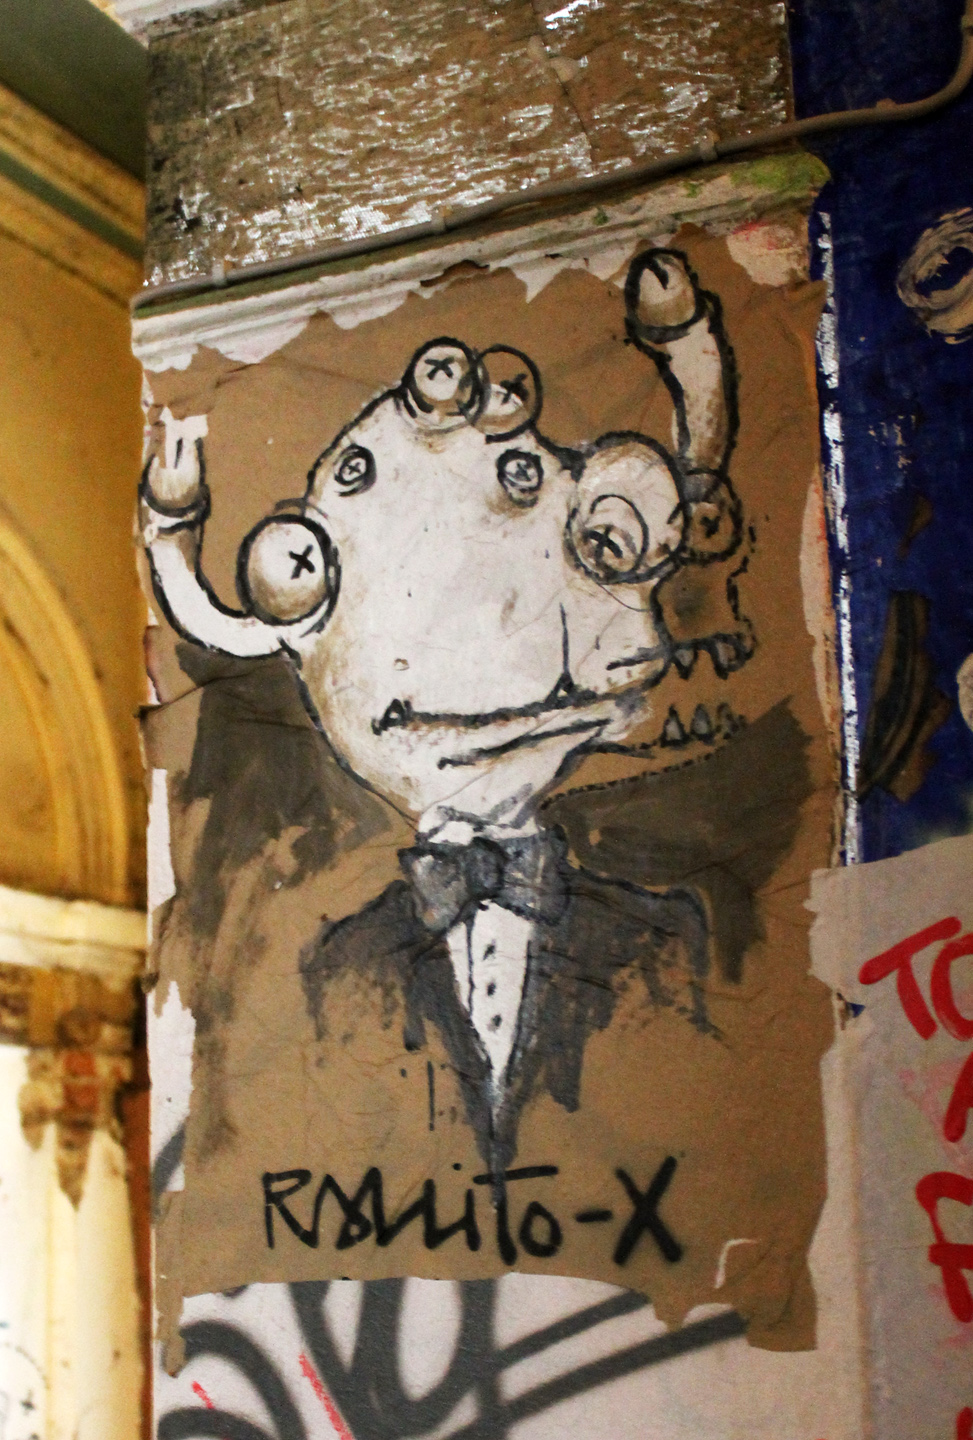 Street Art Berlin - Rallitox: Business Man - Photos and Report by Street Art BLN